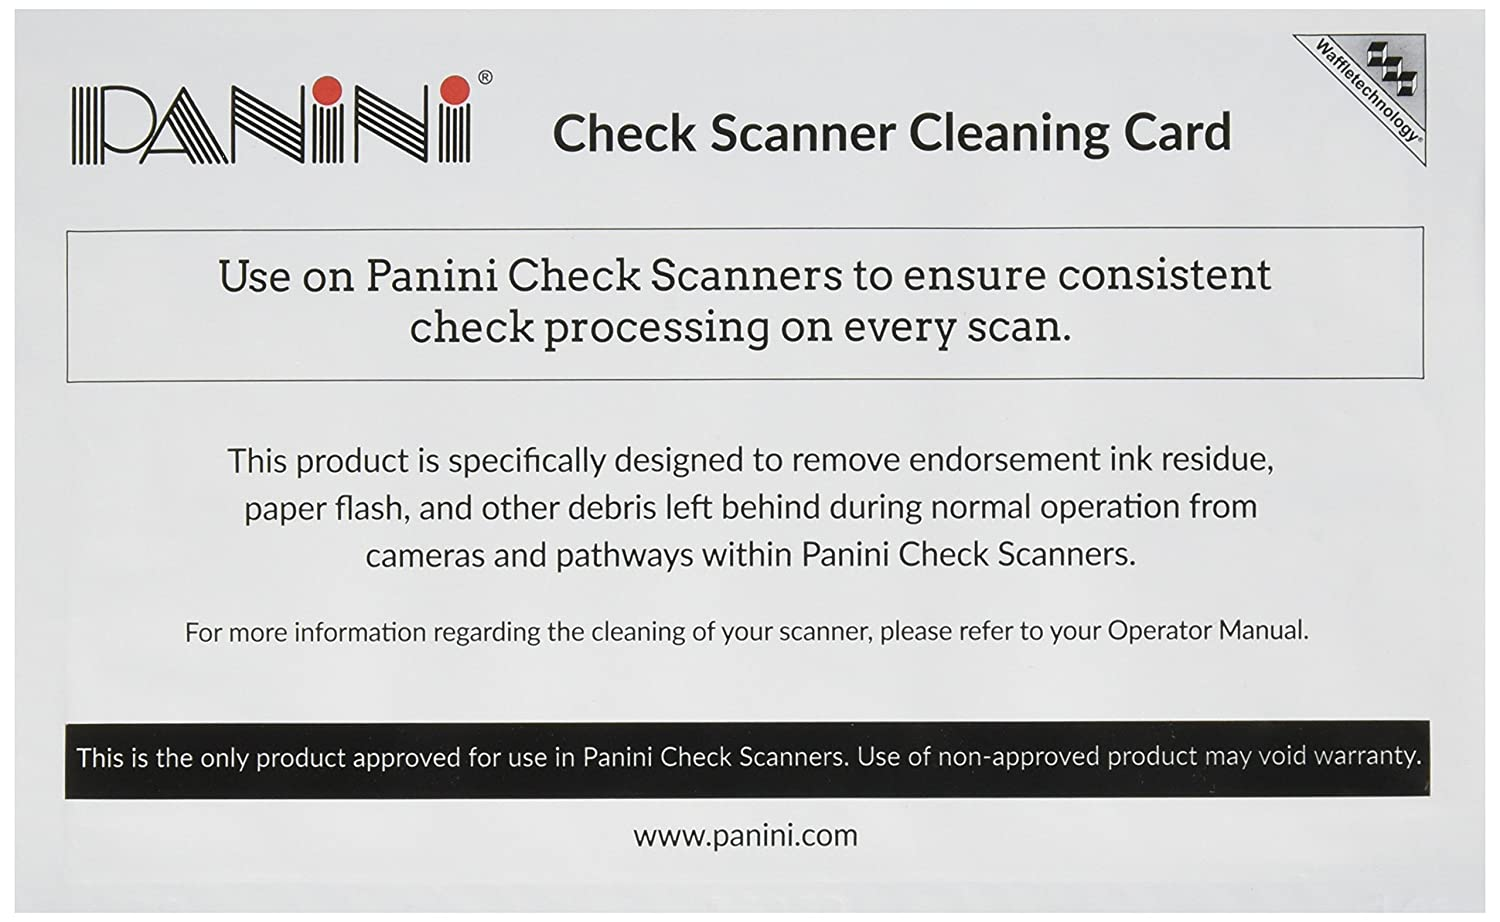 Panini Check Scanner Cleaning Cards featuring Waffletechnology (15 cards) KicTeam KWPNI-CS2B15WS